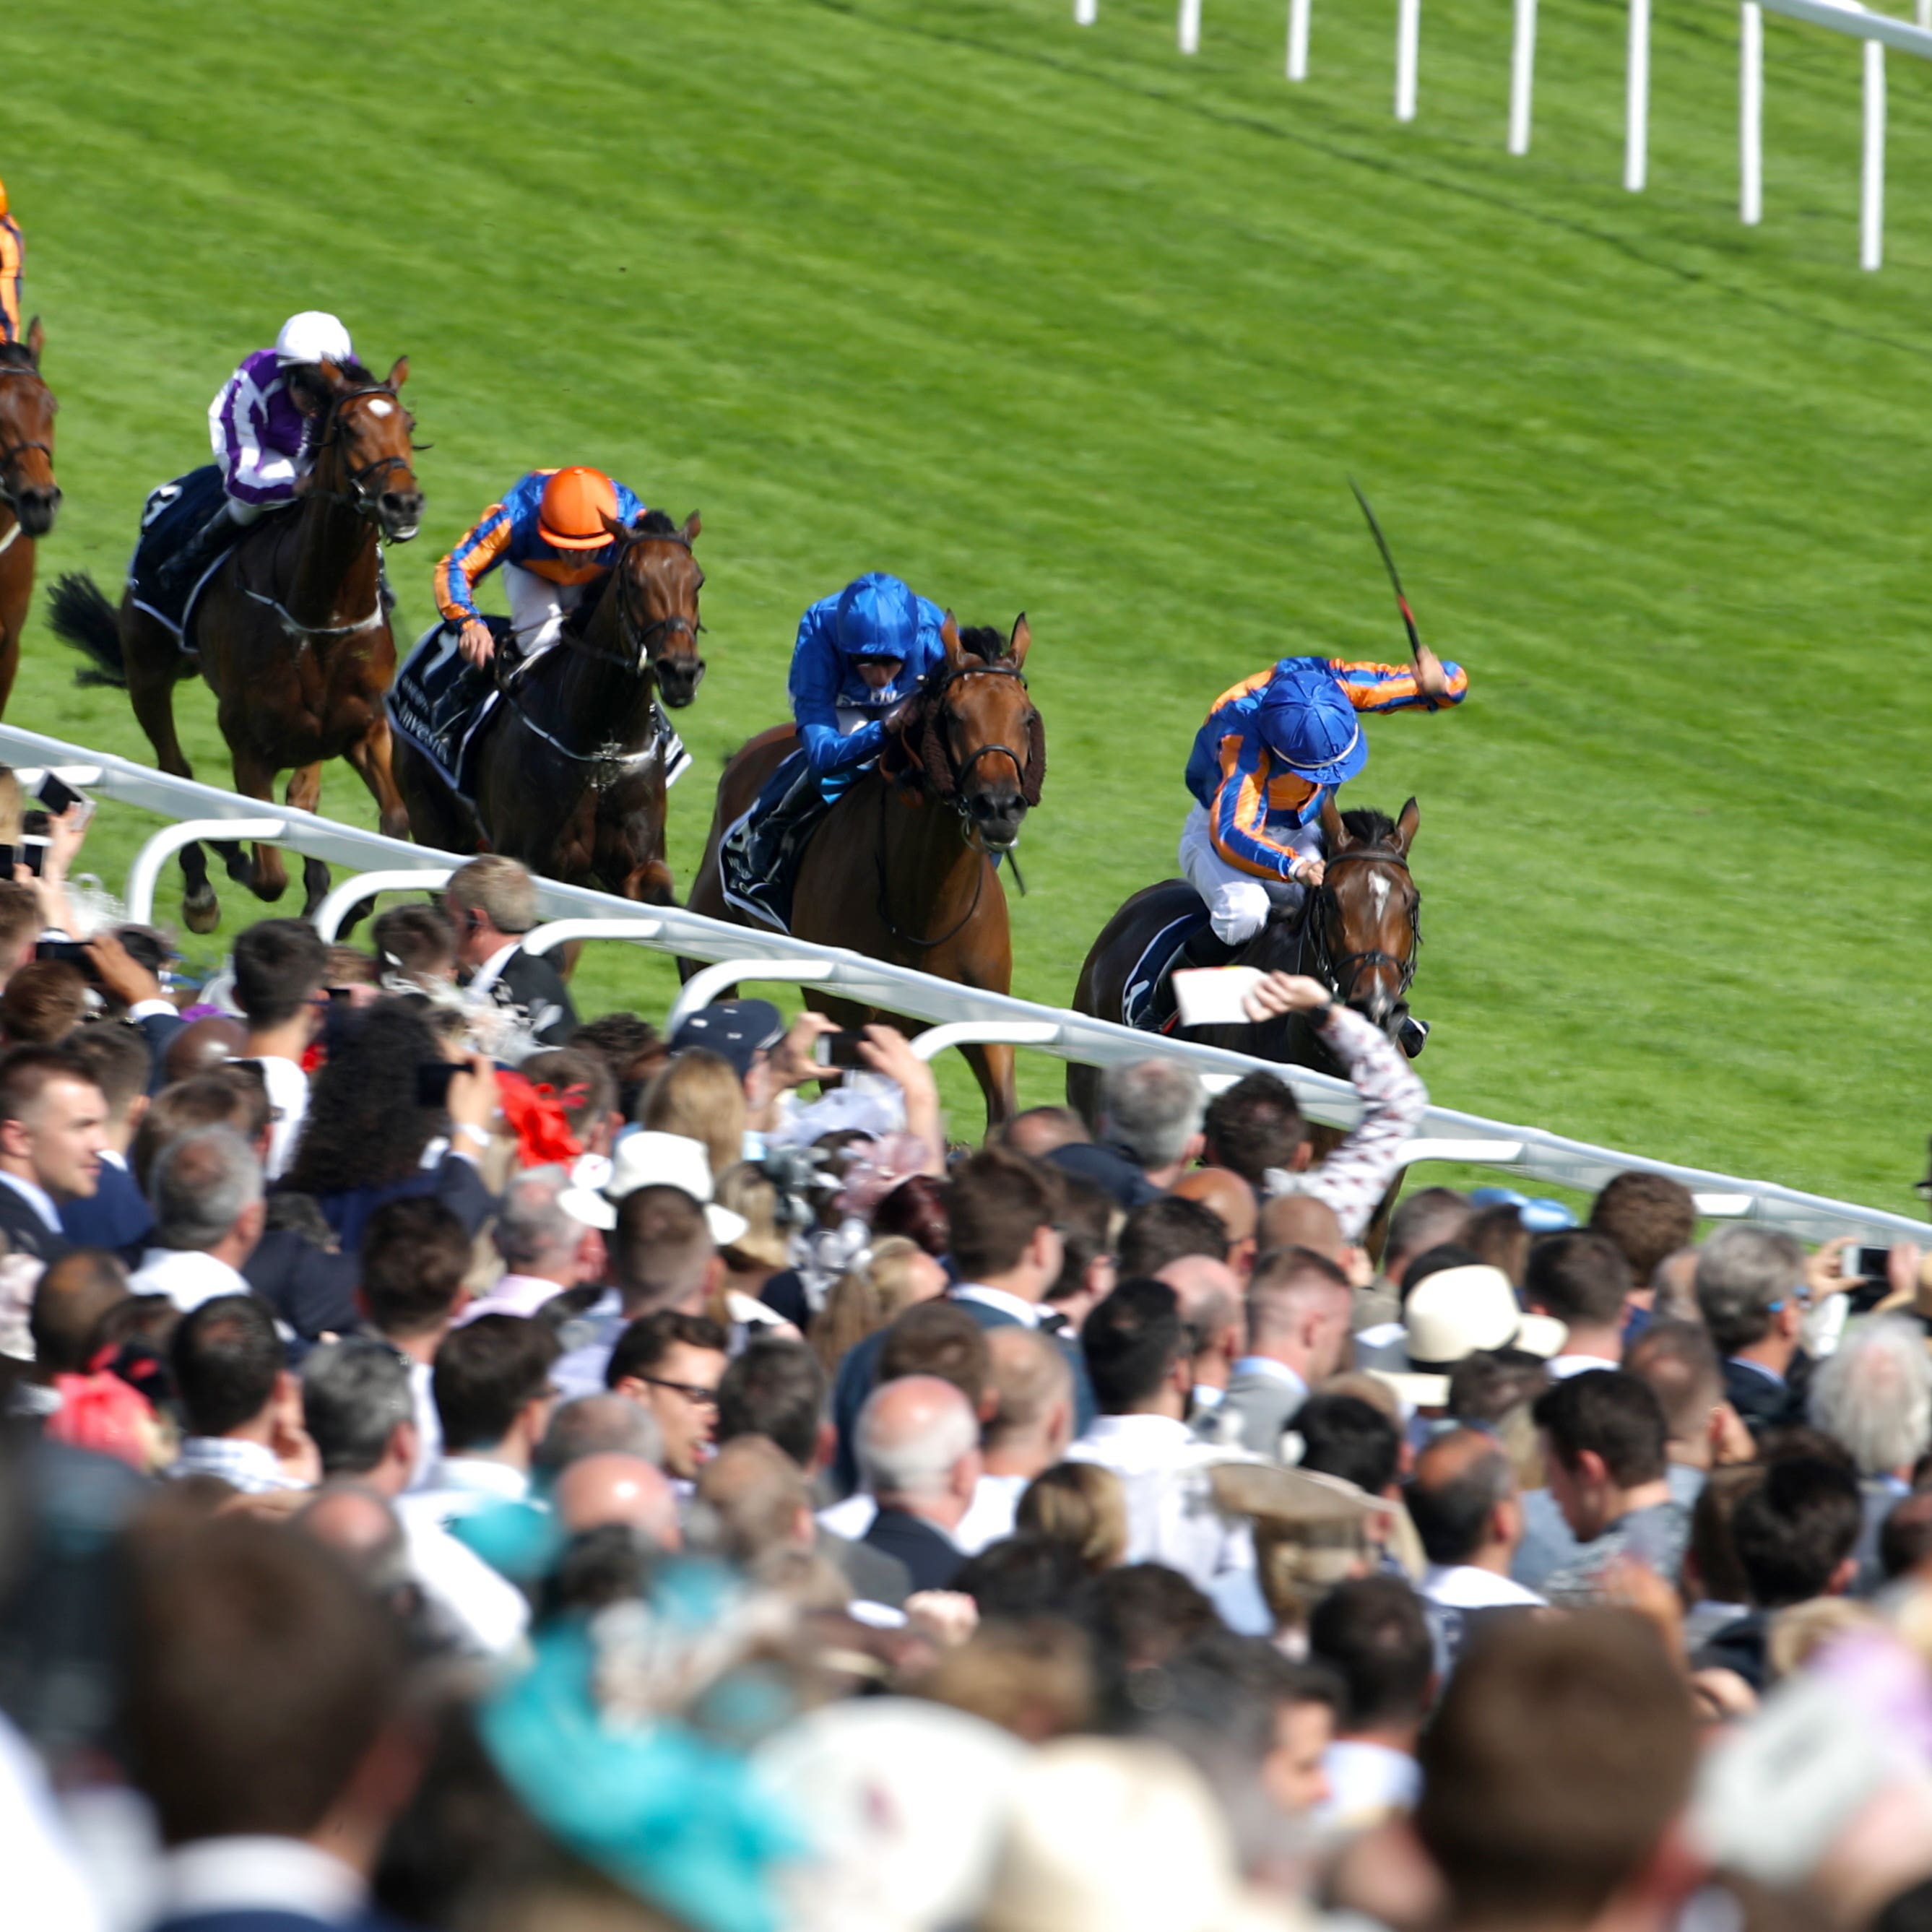 Wild Illusion (second right) finishing second to Forever Together in the Oaks at Epsom